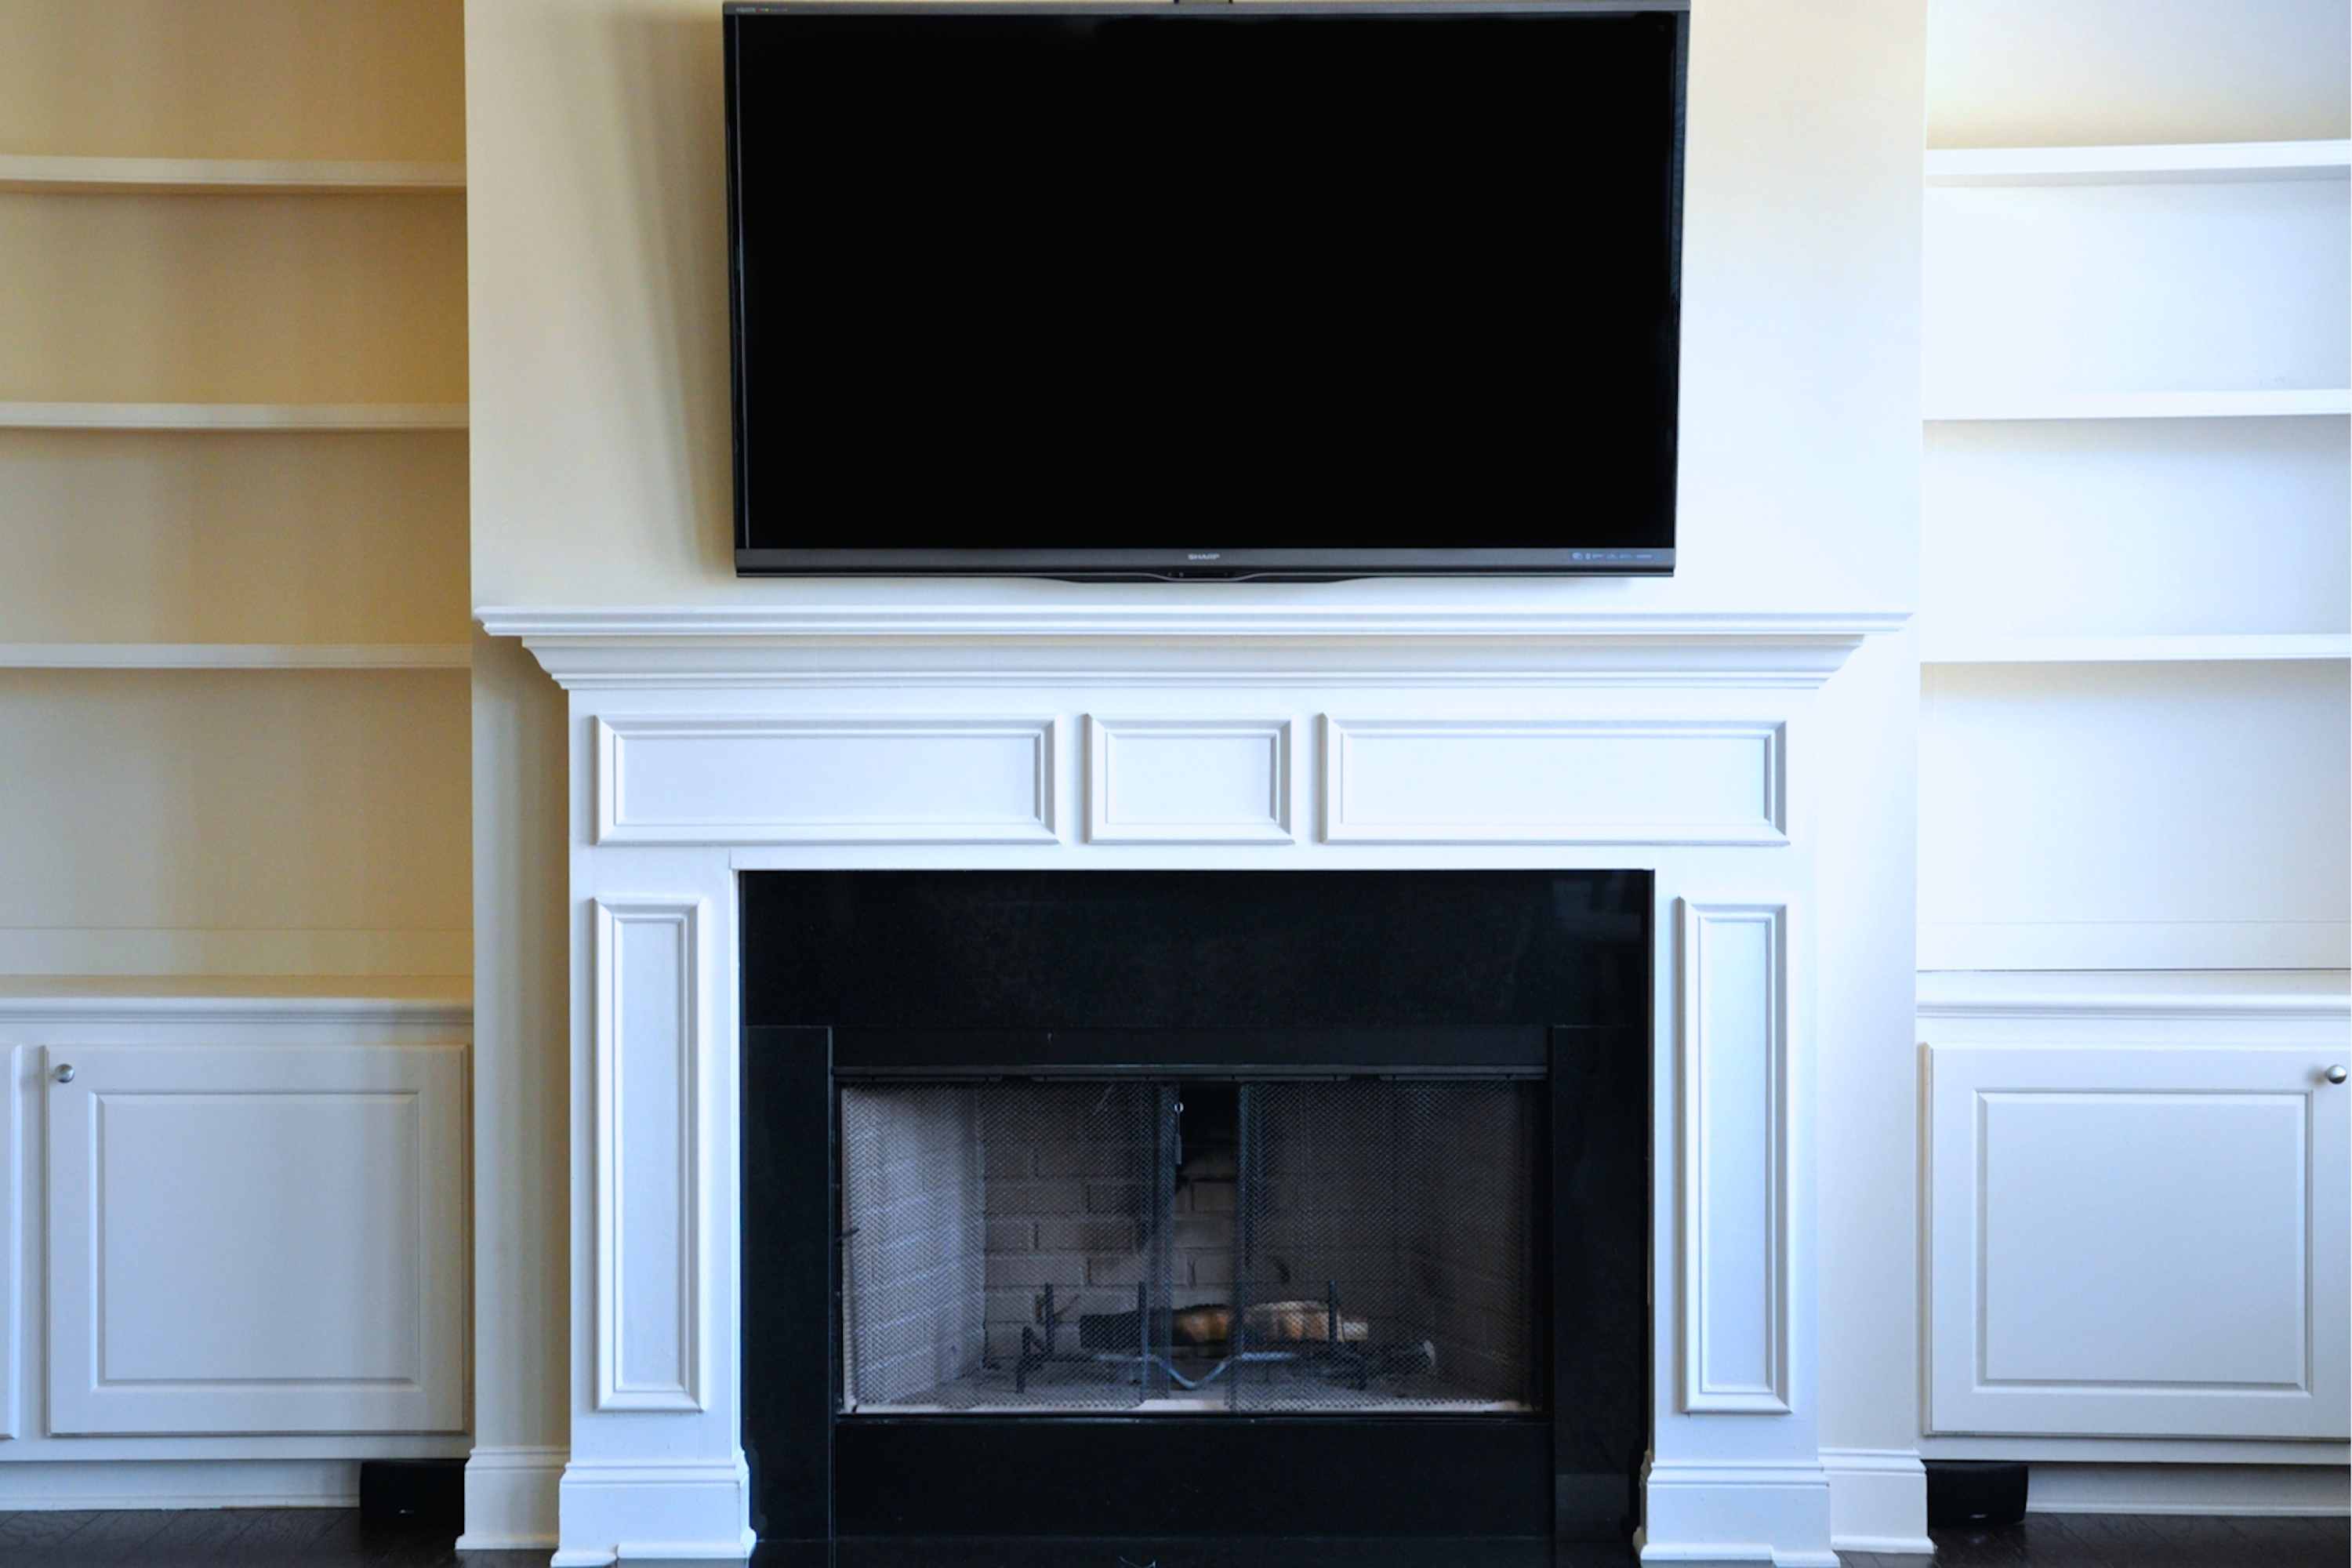 how to mount a flat screen over the fireplace and hide the wires